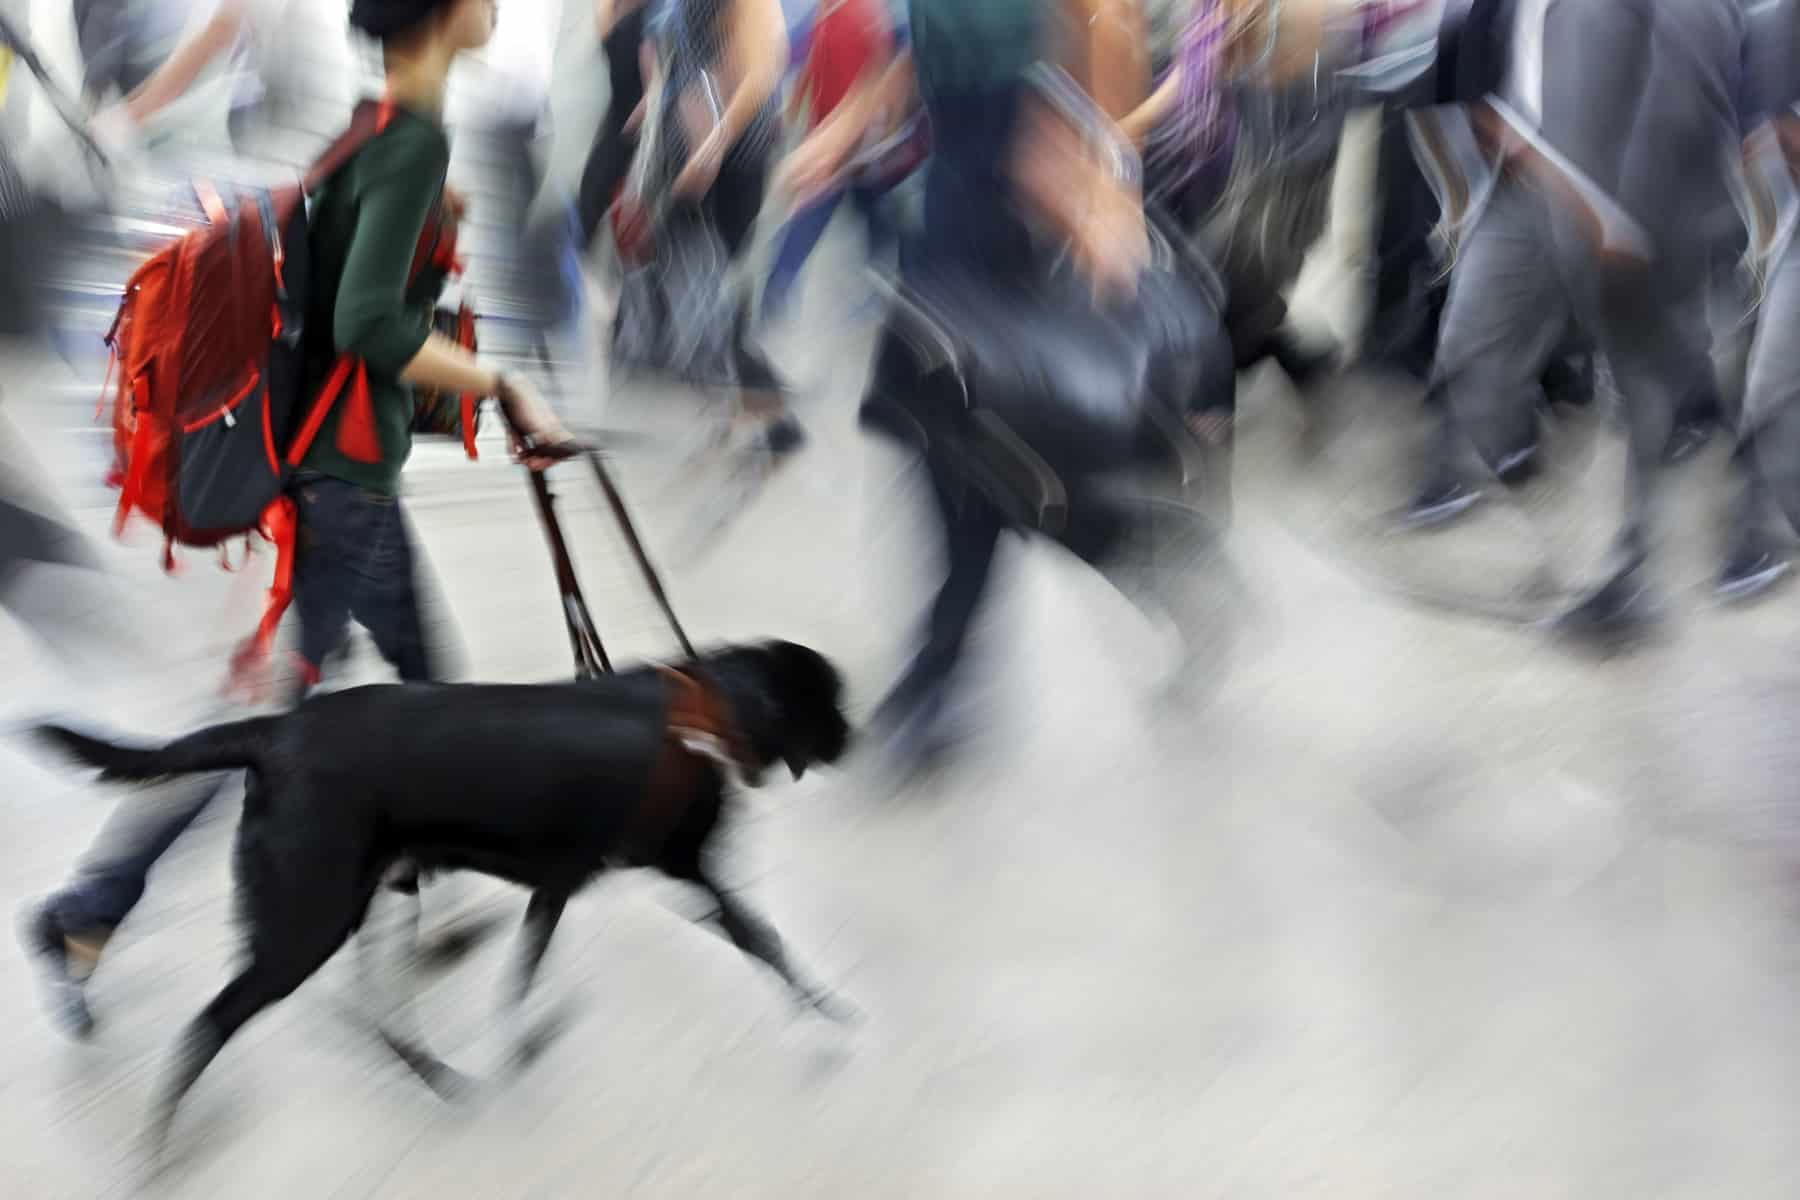 person with service animal hurries among a crowd, blurry image